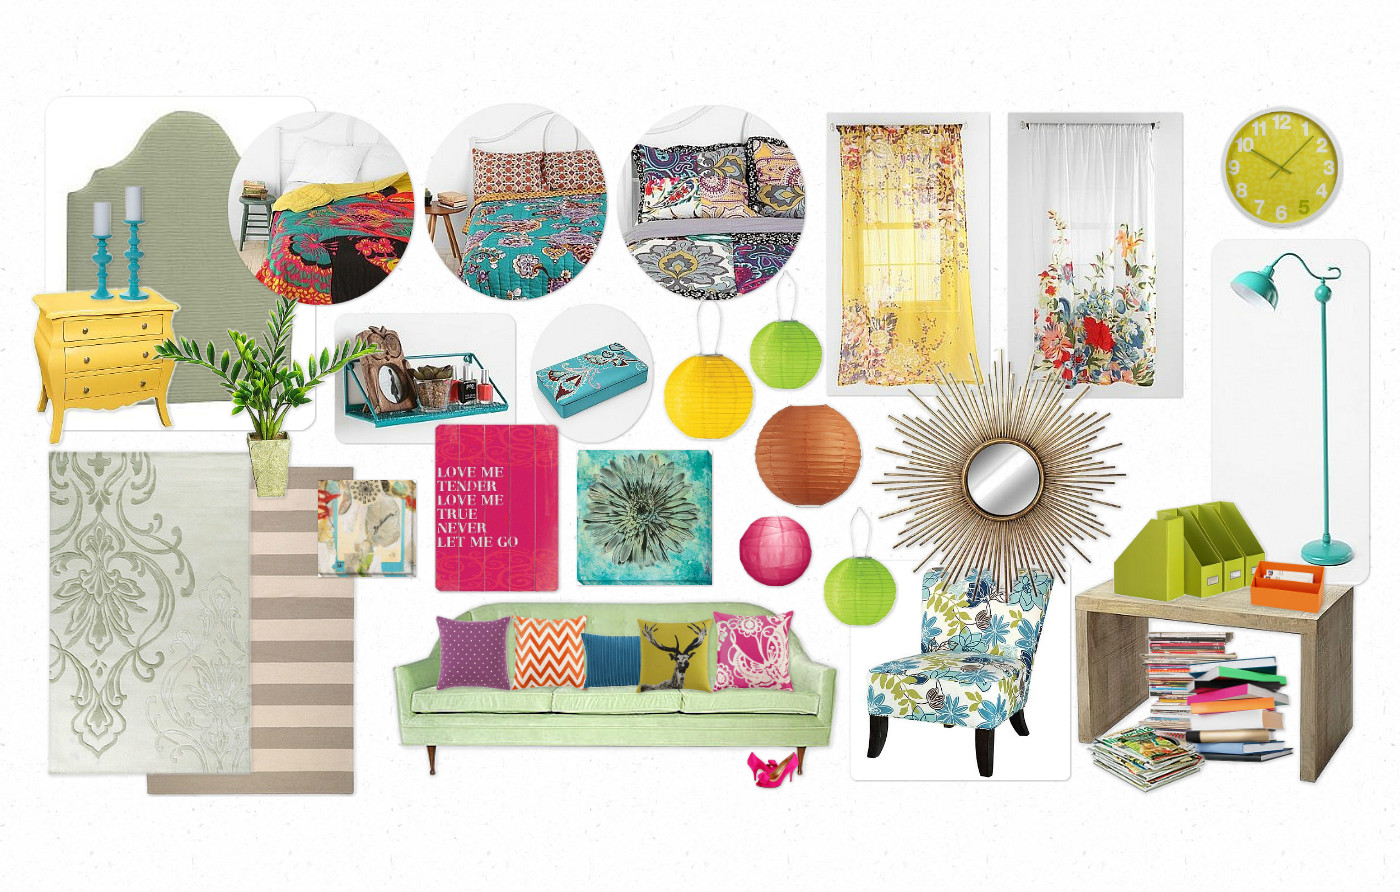 Eclectic, Colorful Artwork. Chinese Paper Lanterns. Floral Curtains.  Brightly Colored Quilt. Upholstered Headboard. Vintage Furniture To Paint A  Fun Color.